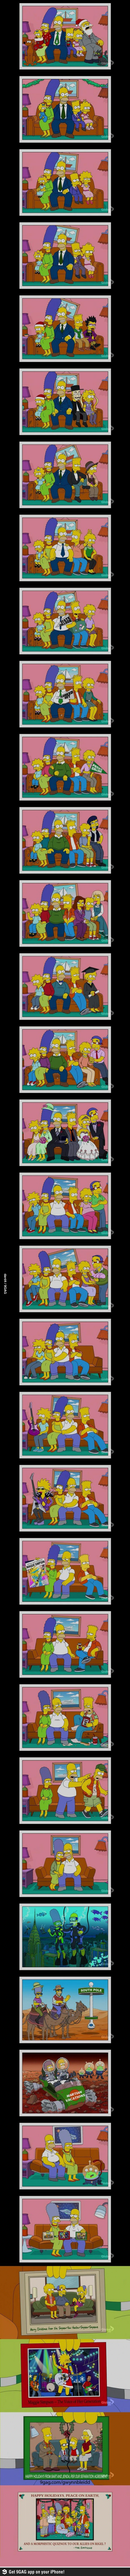 The Simpsons- A Christmas Family Photo? by pjcb12